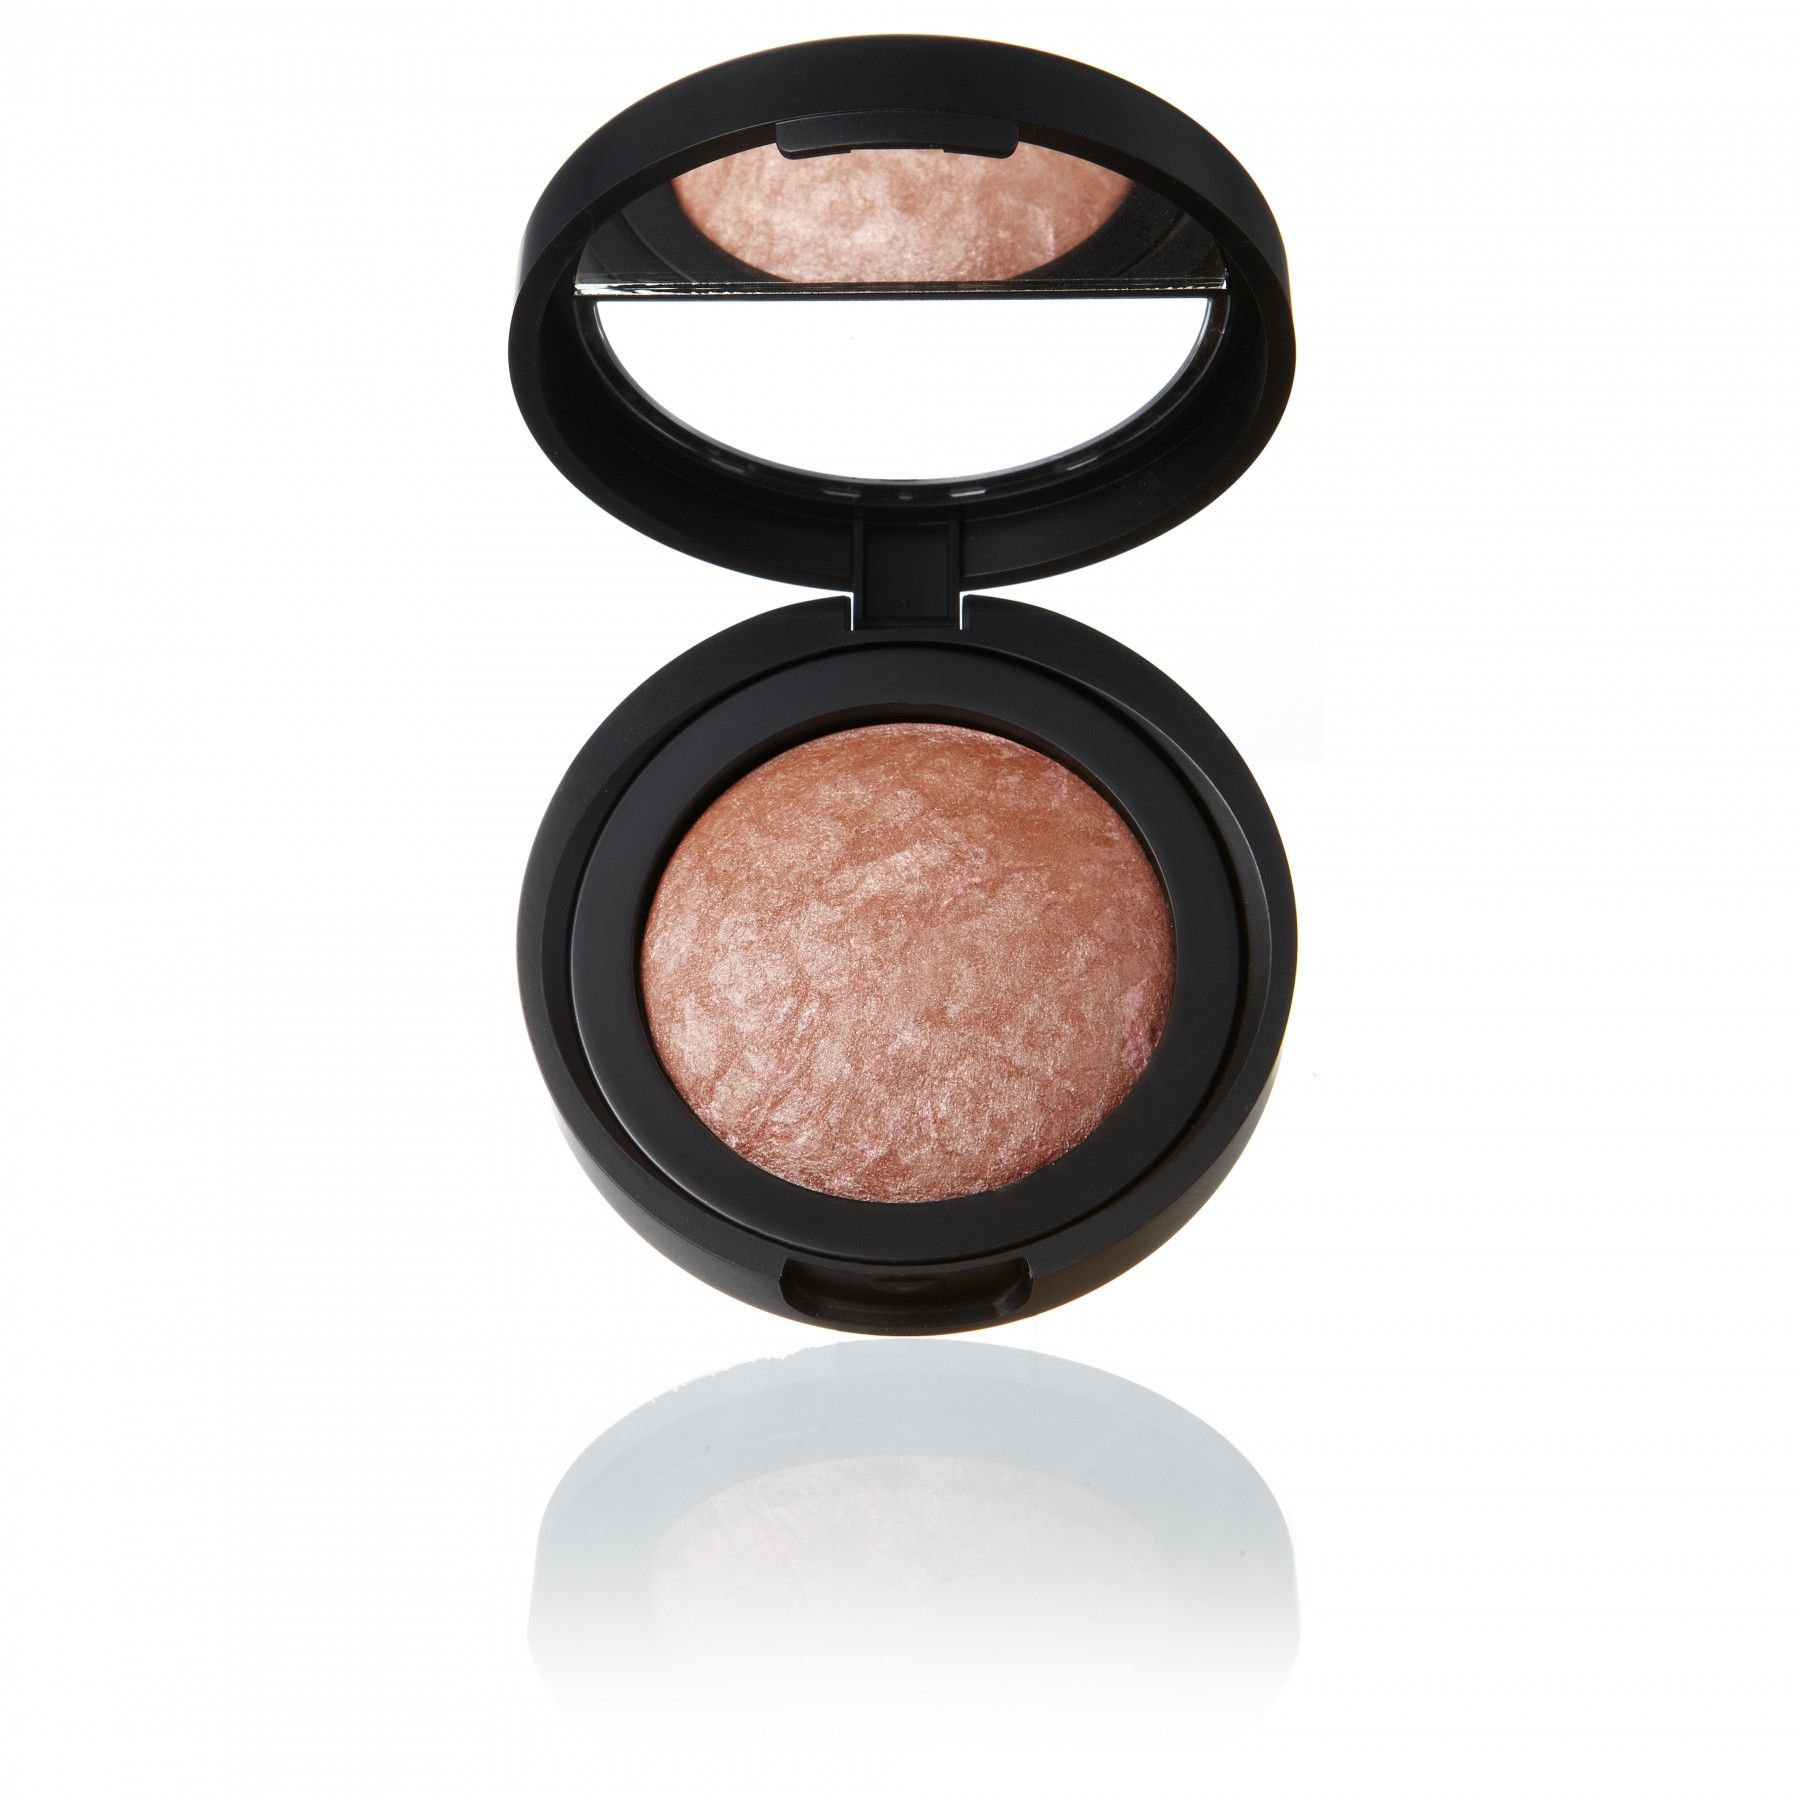 Blushnbrighten Laura Geller Baked blush